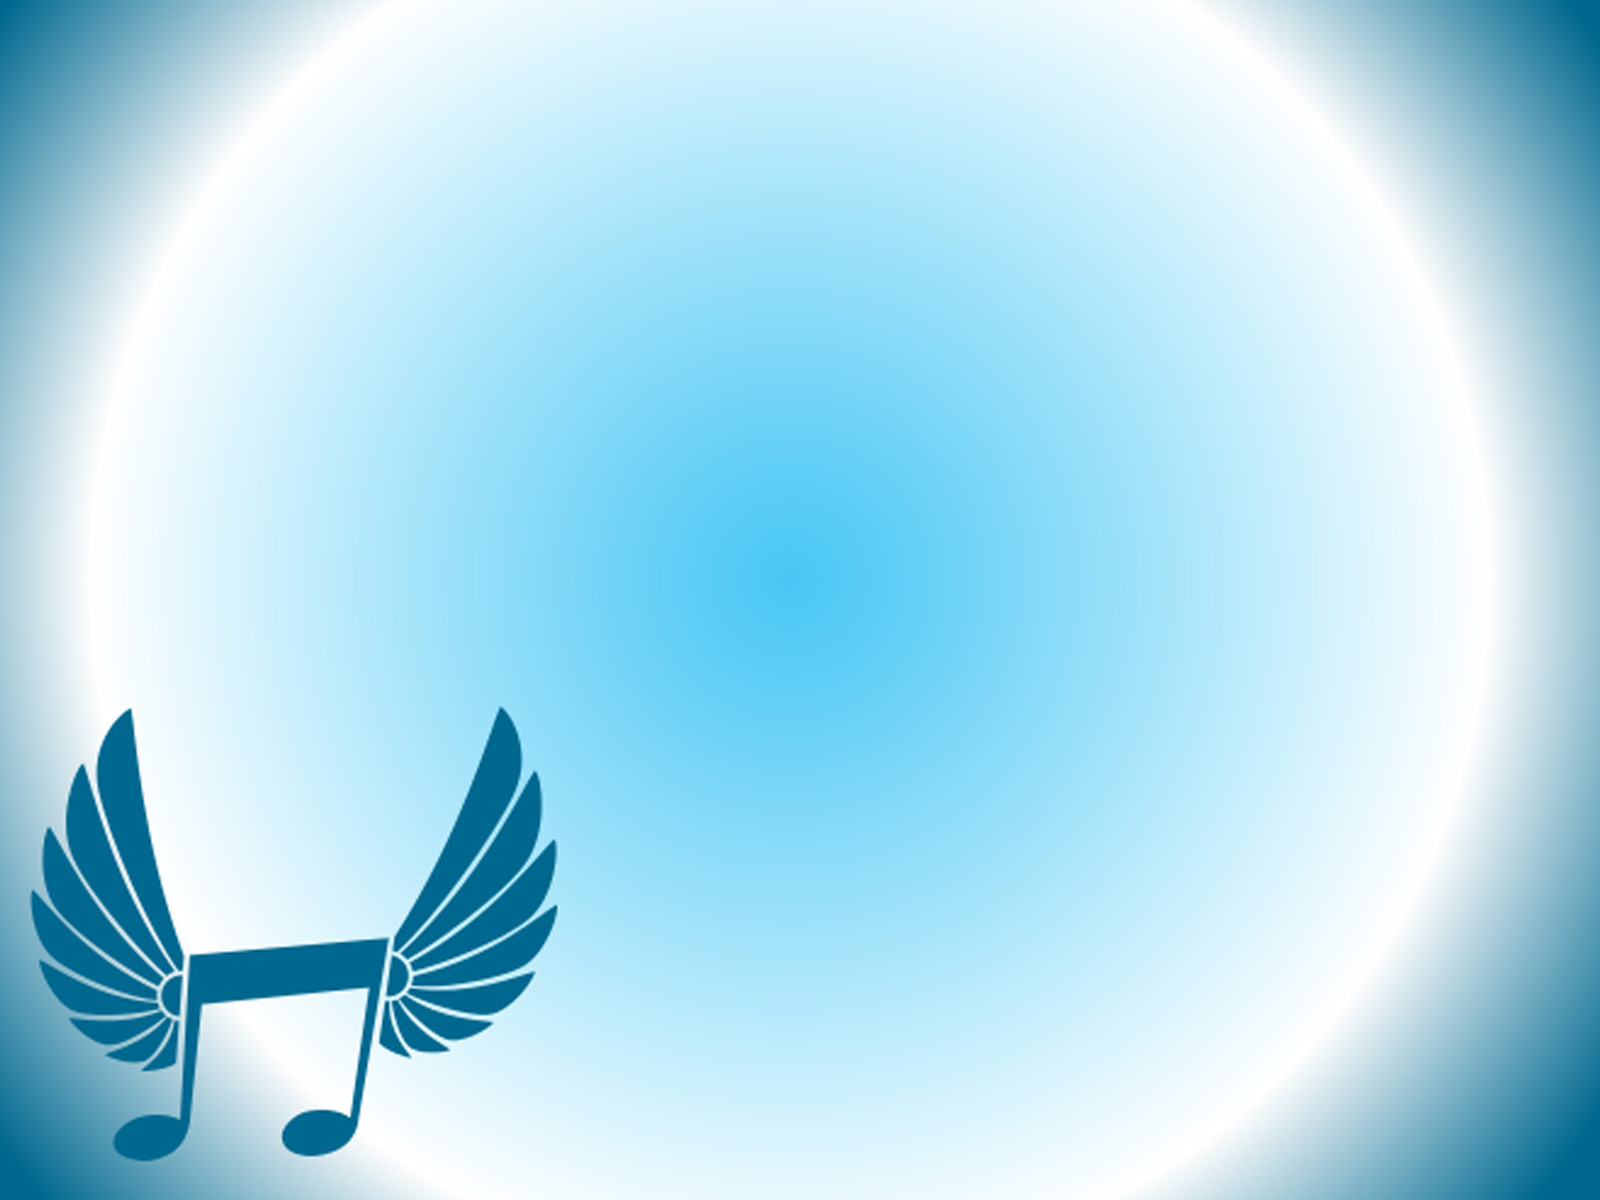 winged music icon backgrounds blue  music  white templates free ppt backgrounds and christian christmas clipart for kids christian christmas clipart for kids